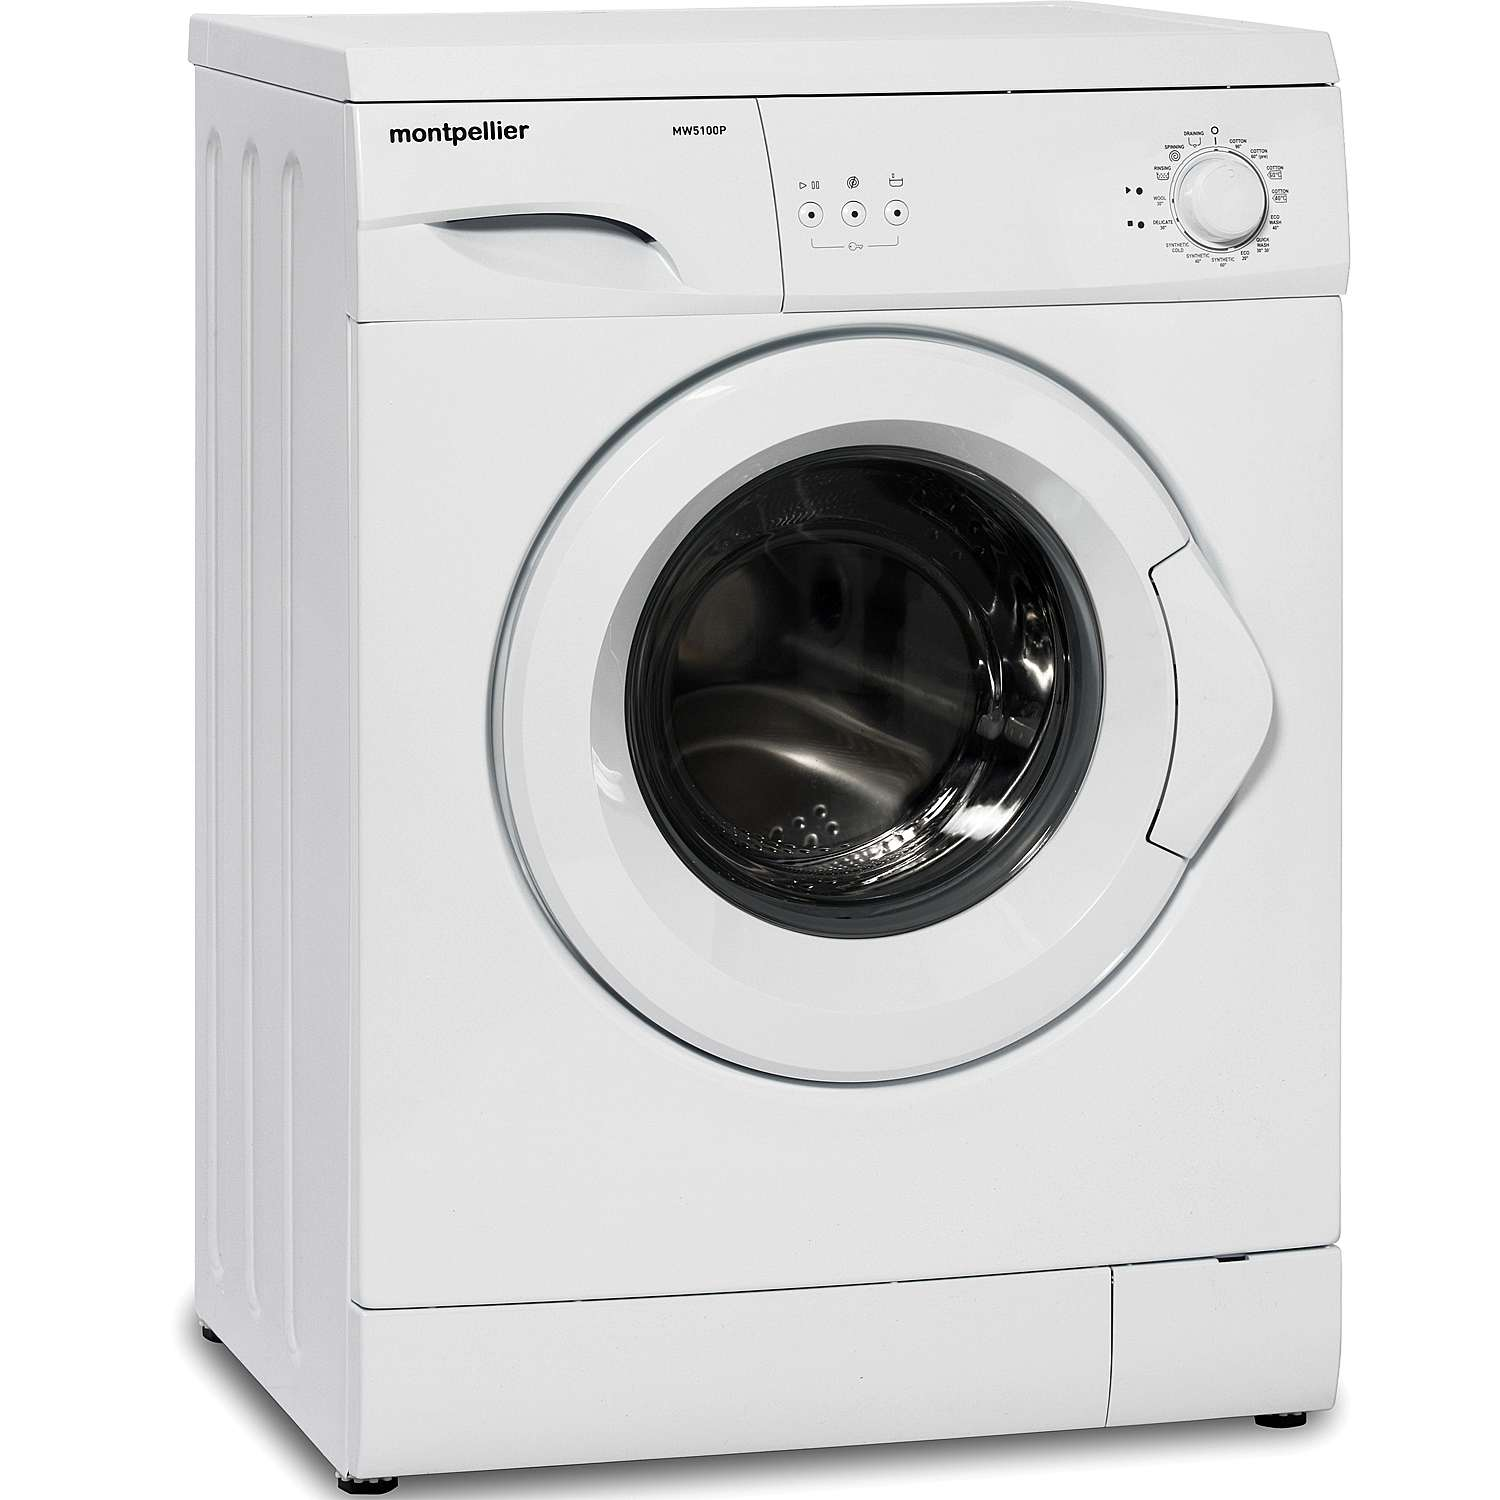 MONTPELLIER 5KG WASHING MACHINE